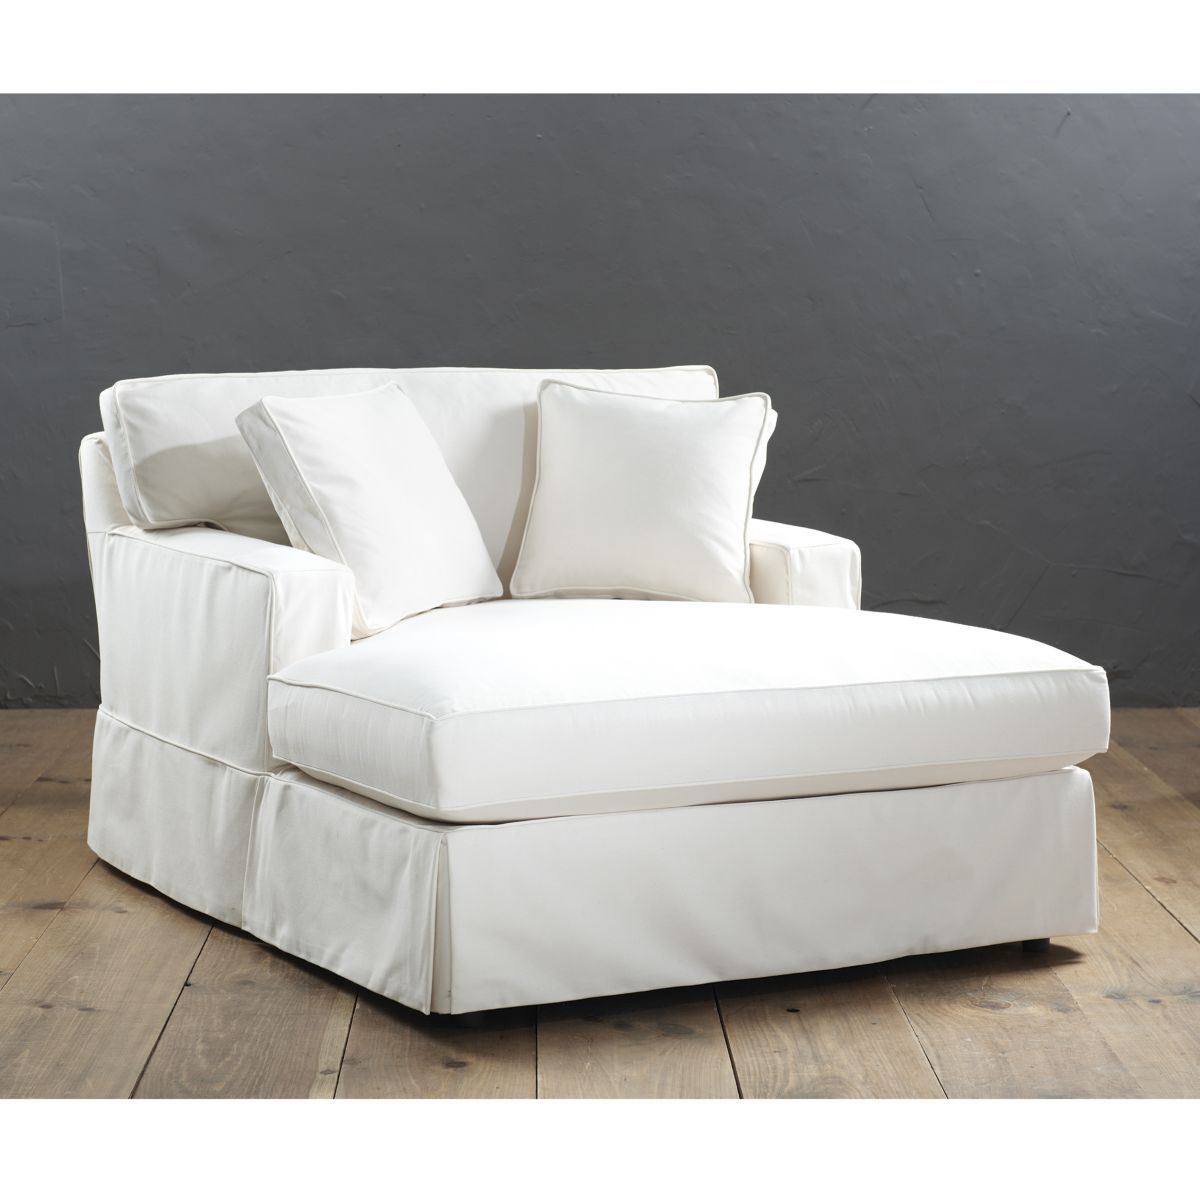 Lee Industries C3621 21 Slipcovered Chaise Furniture Upholstered Furniture Slipcovers